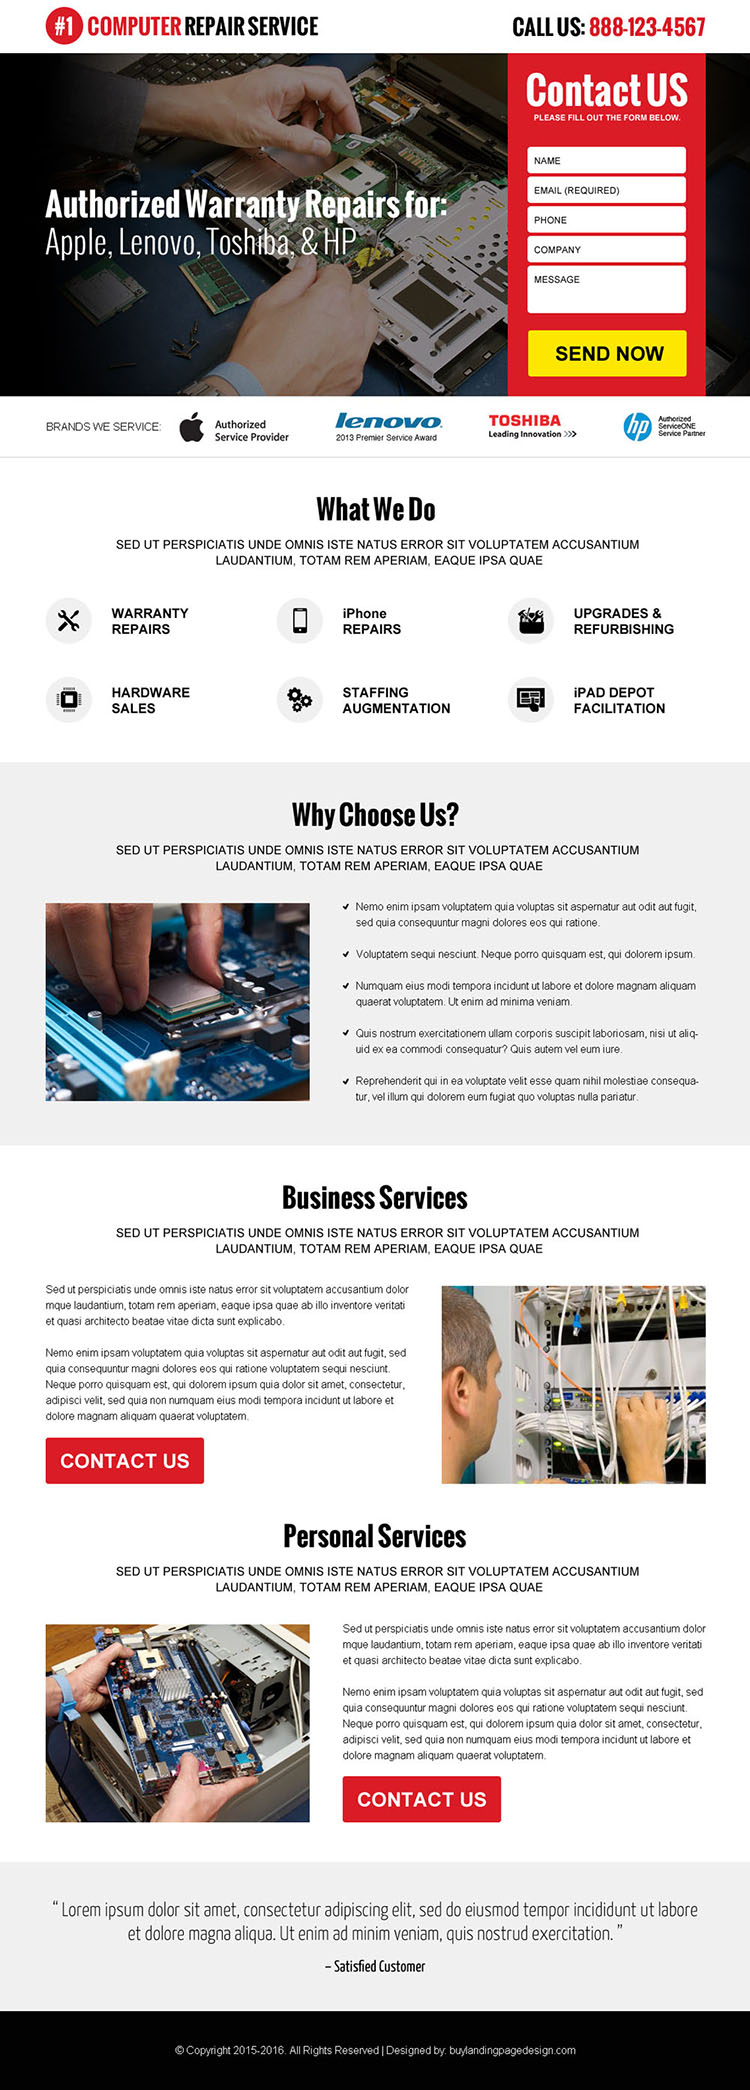 computer repair service responsive lead capturing landing page design